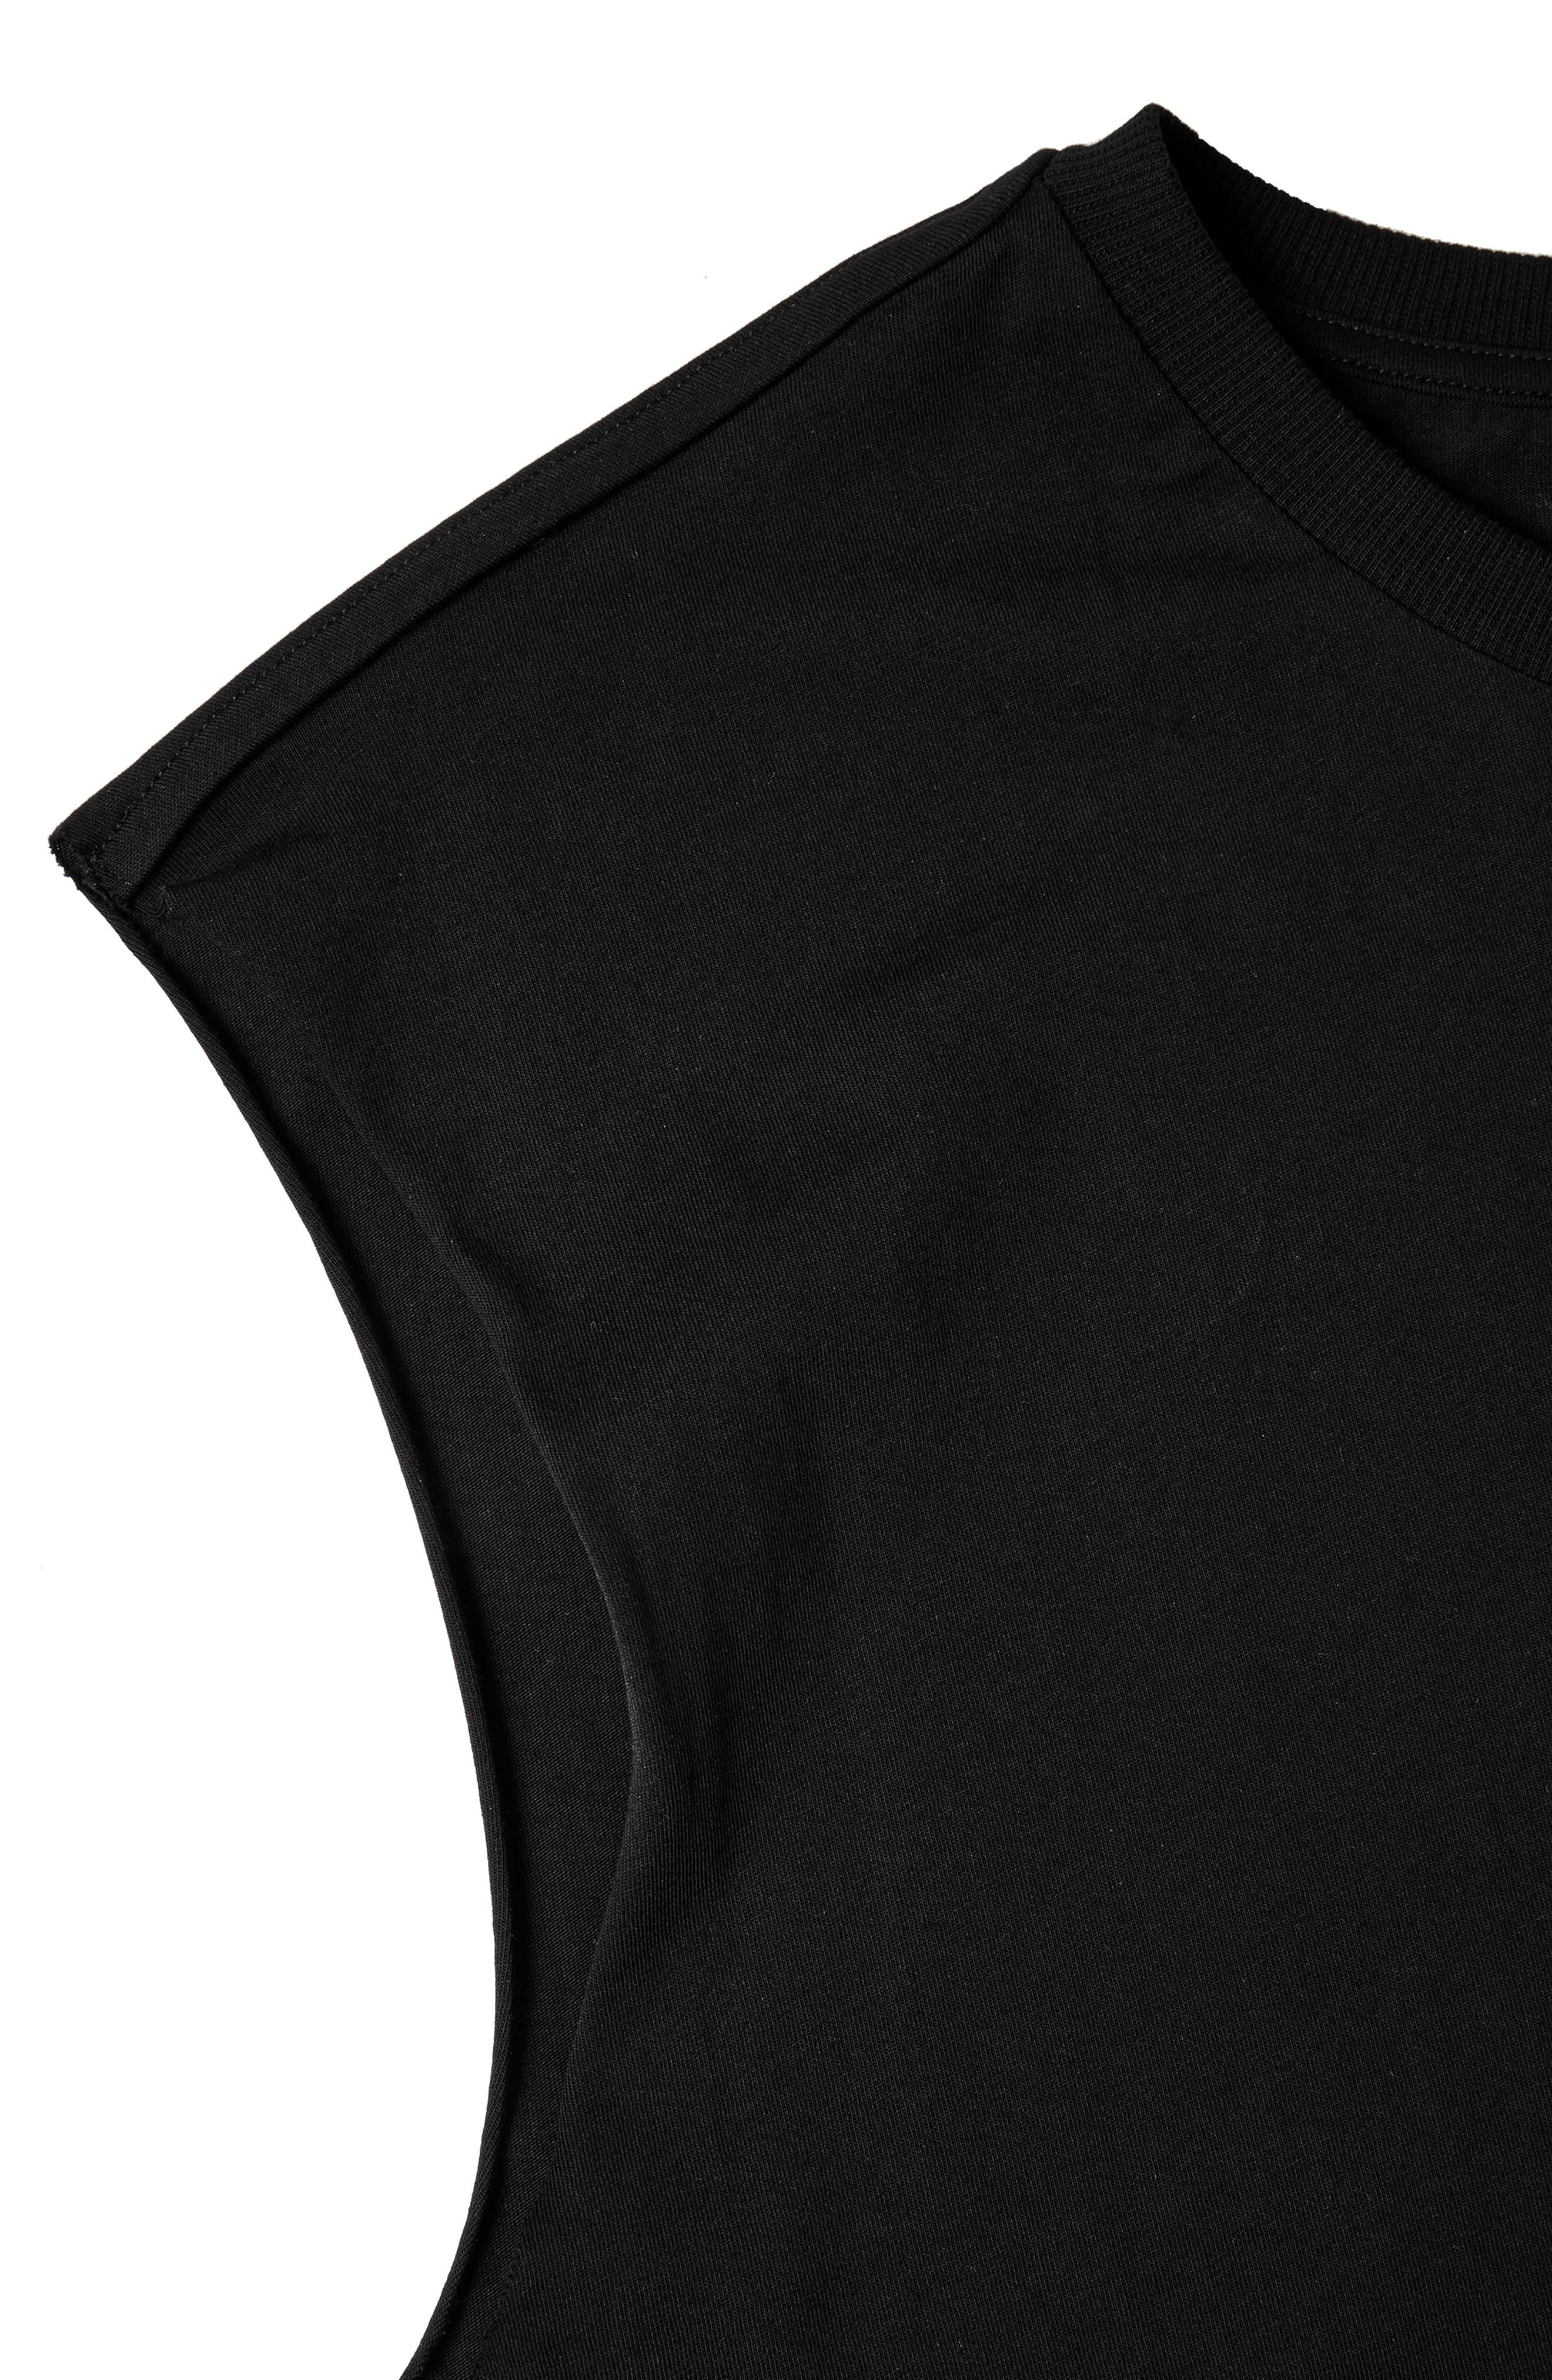 Raw Sleeve Top,                             Alternate thumbnail 3, color,                             001